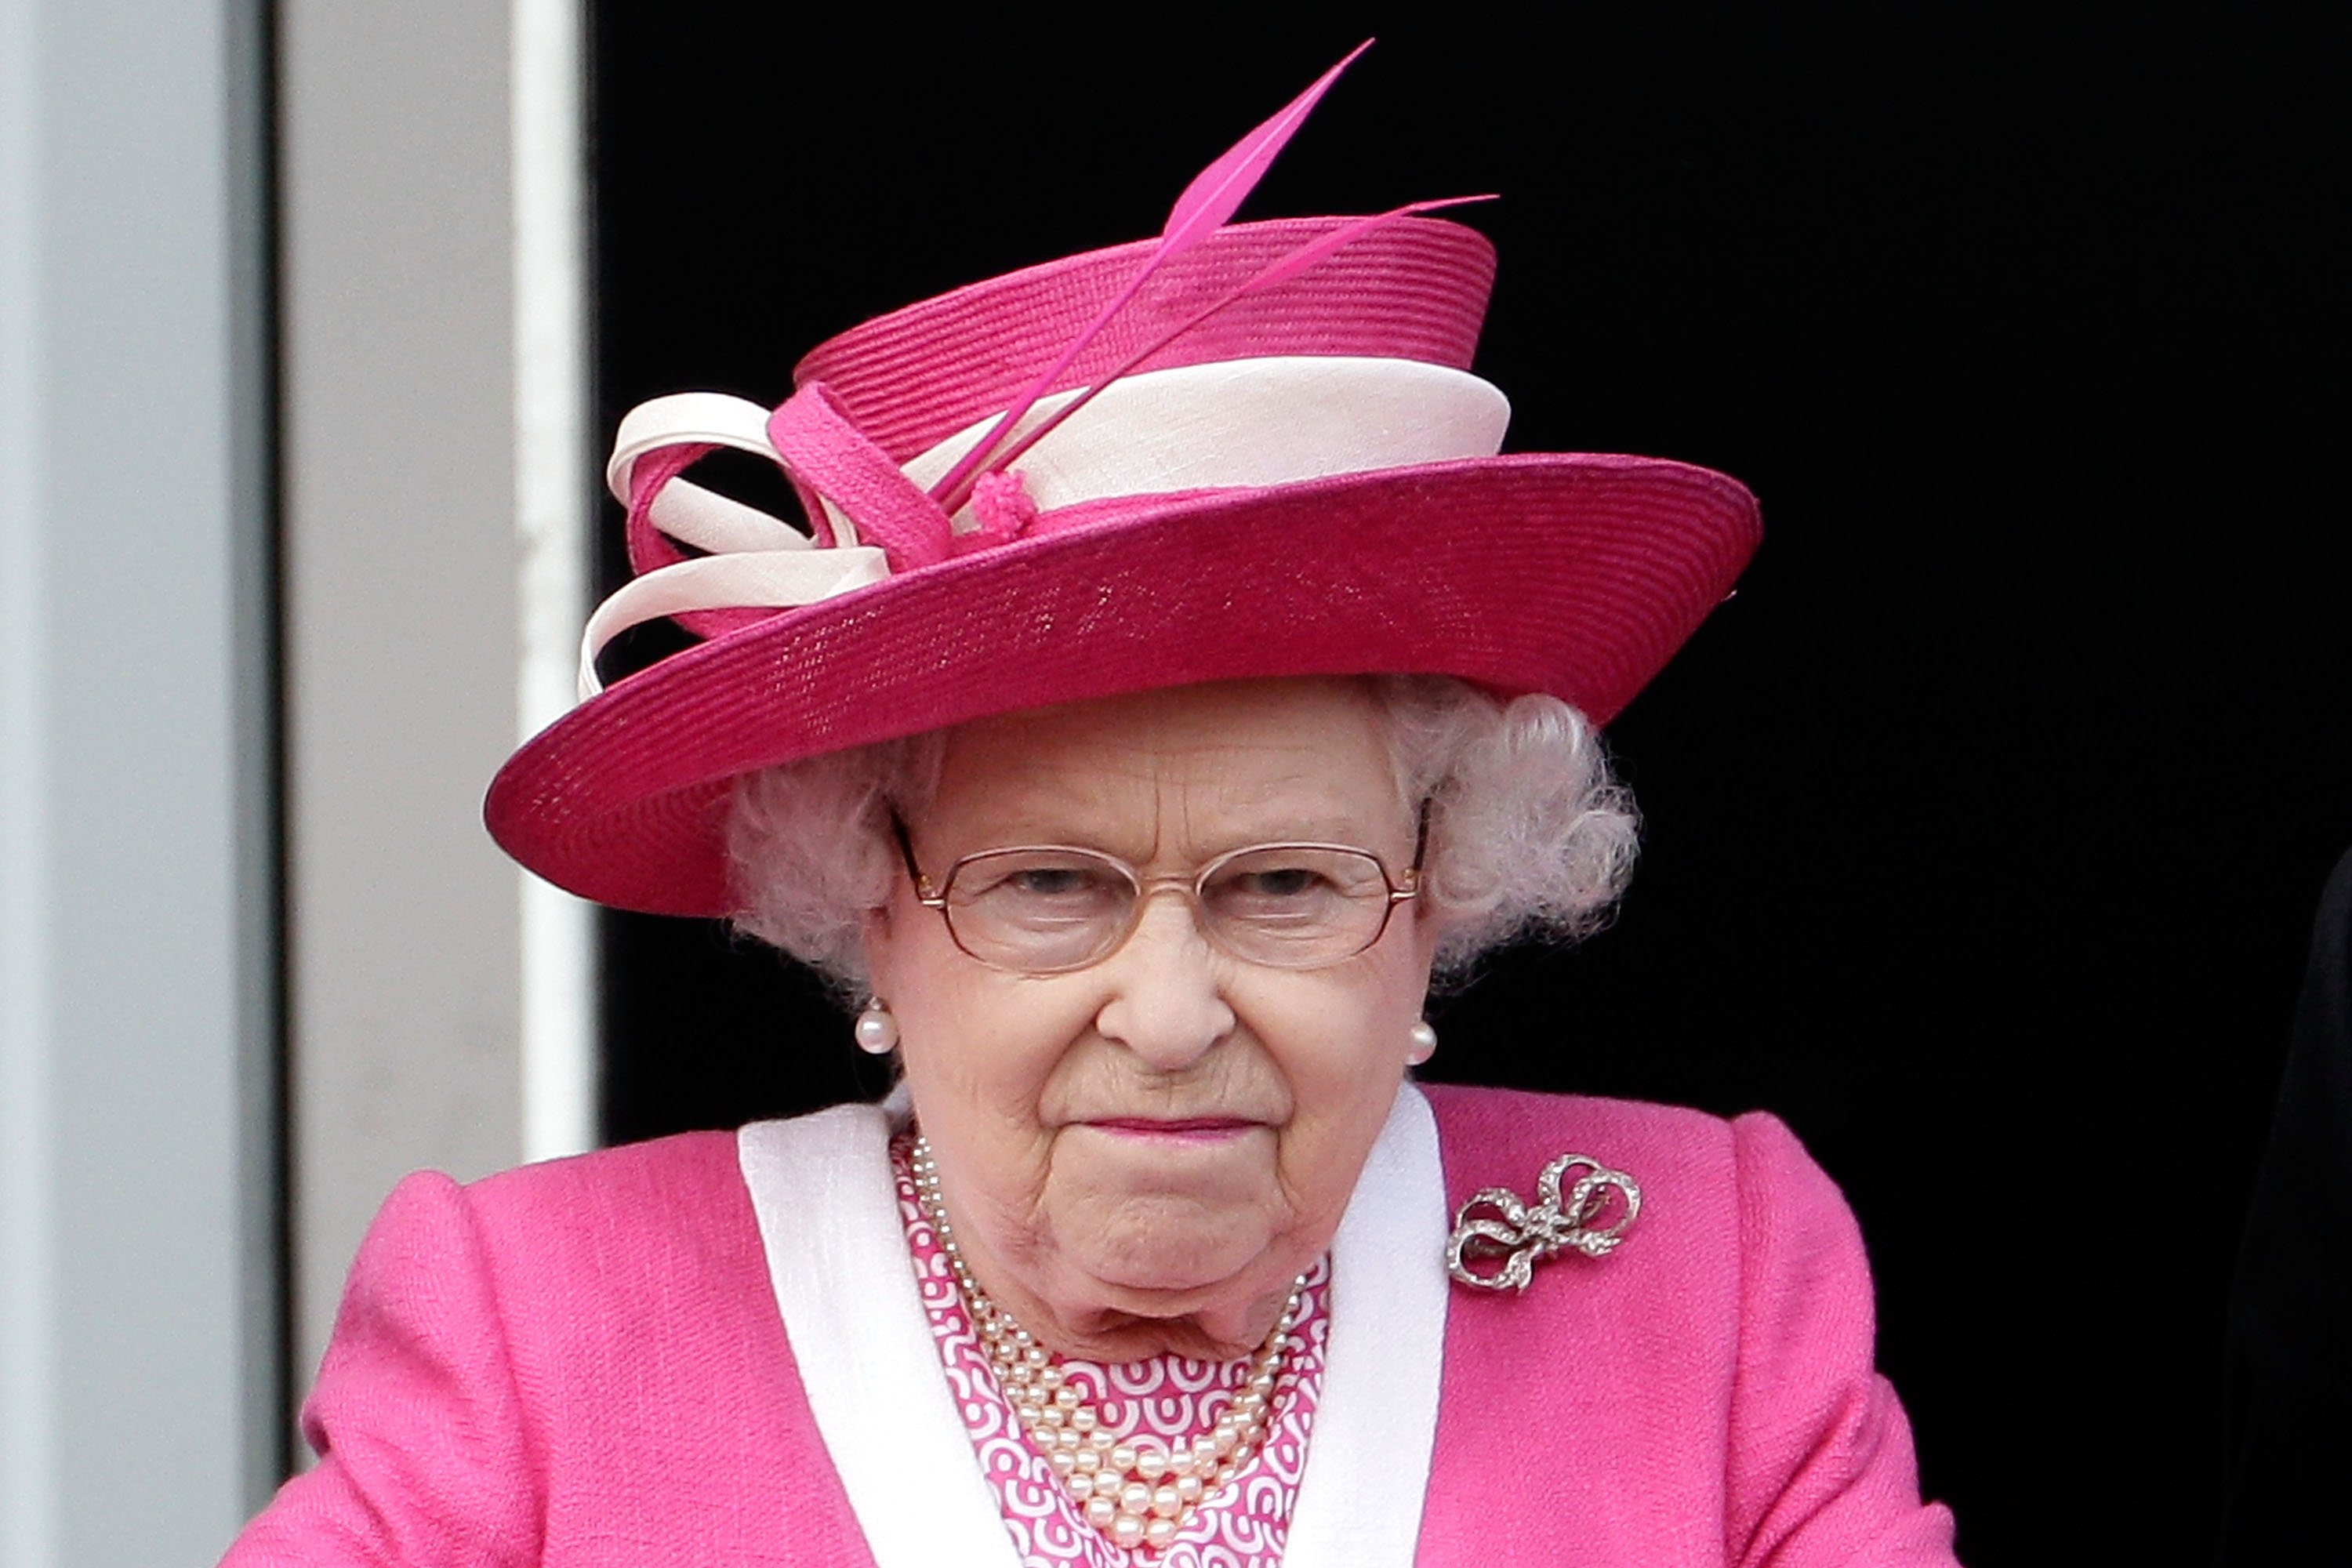 Queen Elizabeth II at Epsom Downs racecourse on June 4, 2011 in Epsom, England | Photo: Getty Images